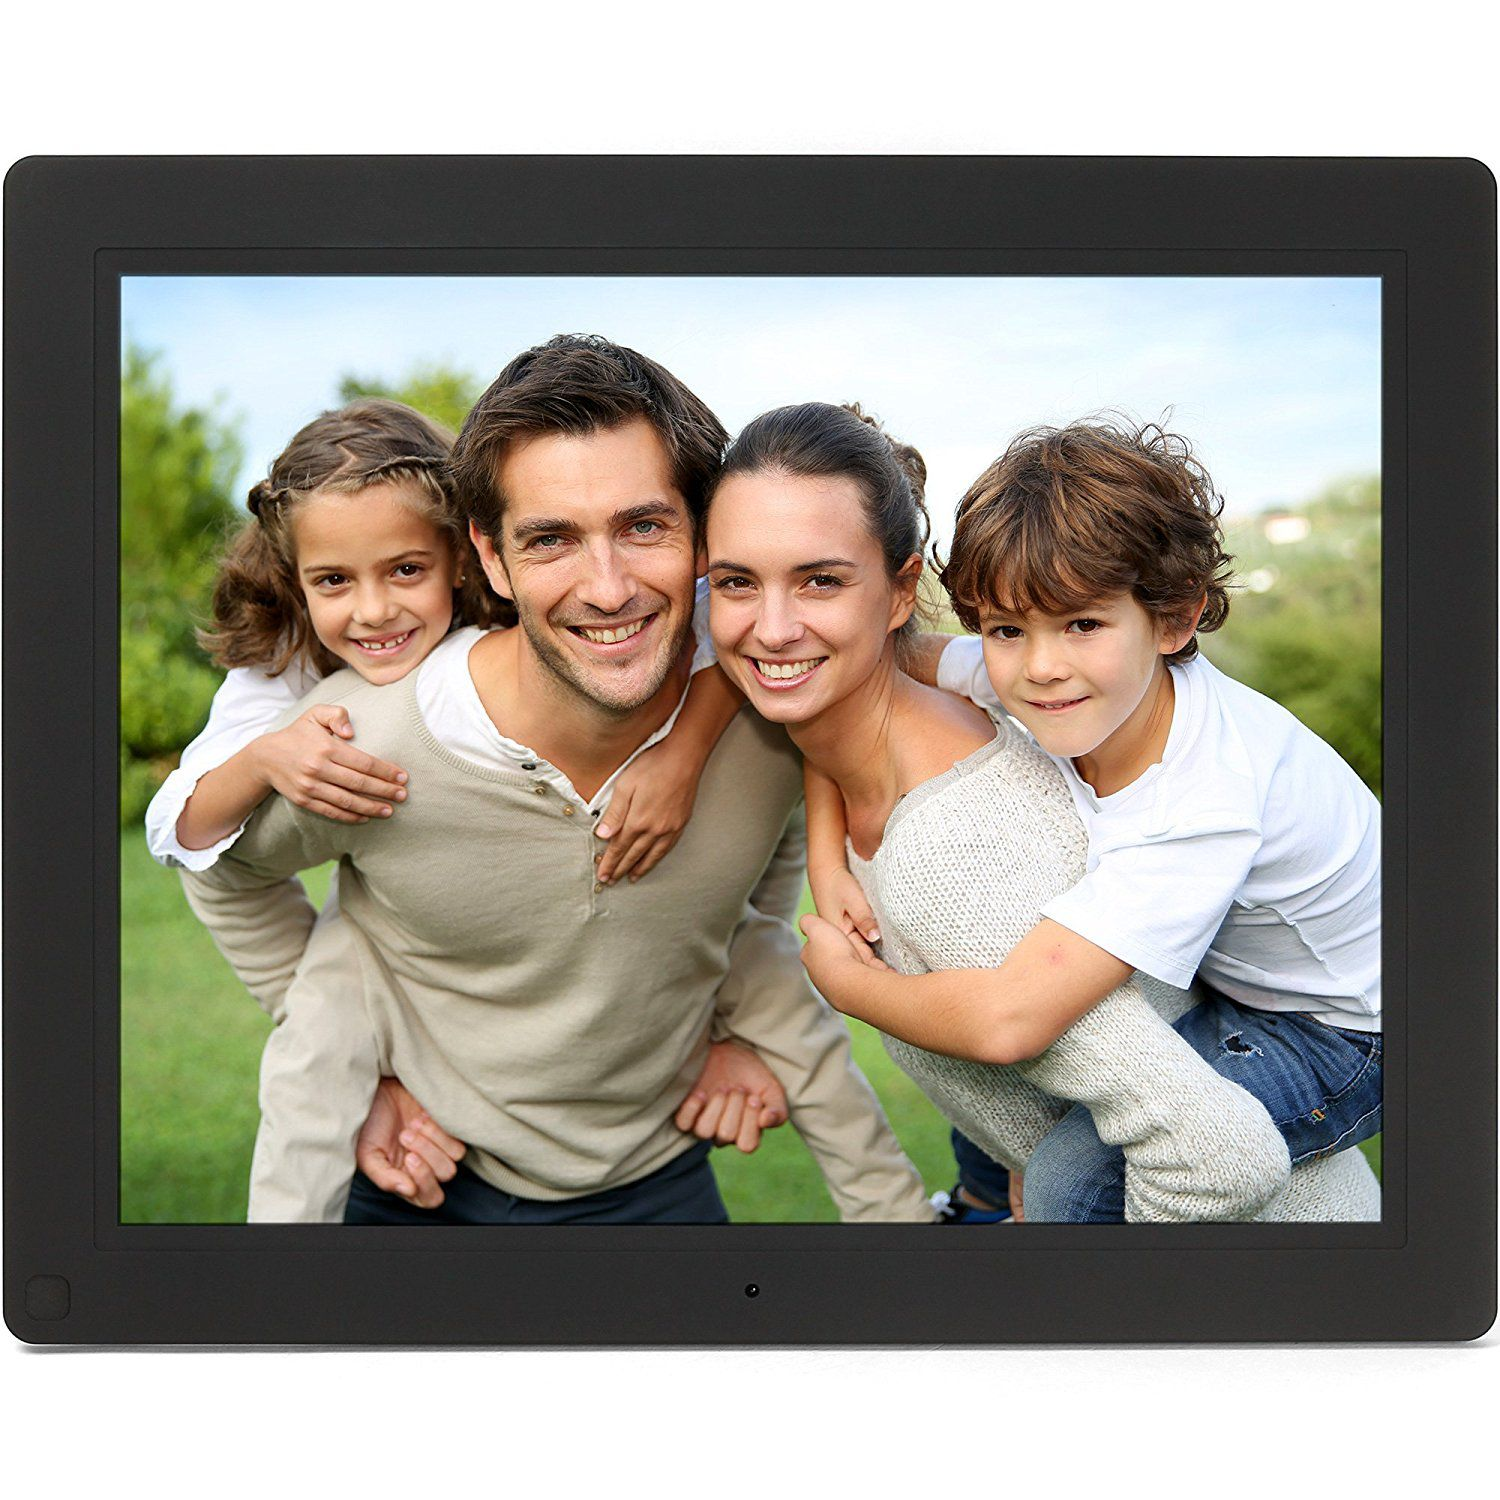 Micca NEO 15-Inch Digital Photo Frame with 8GB Storage, Motion ...